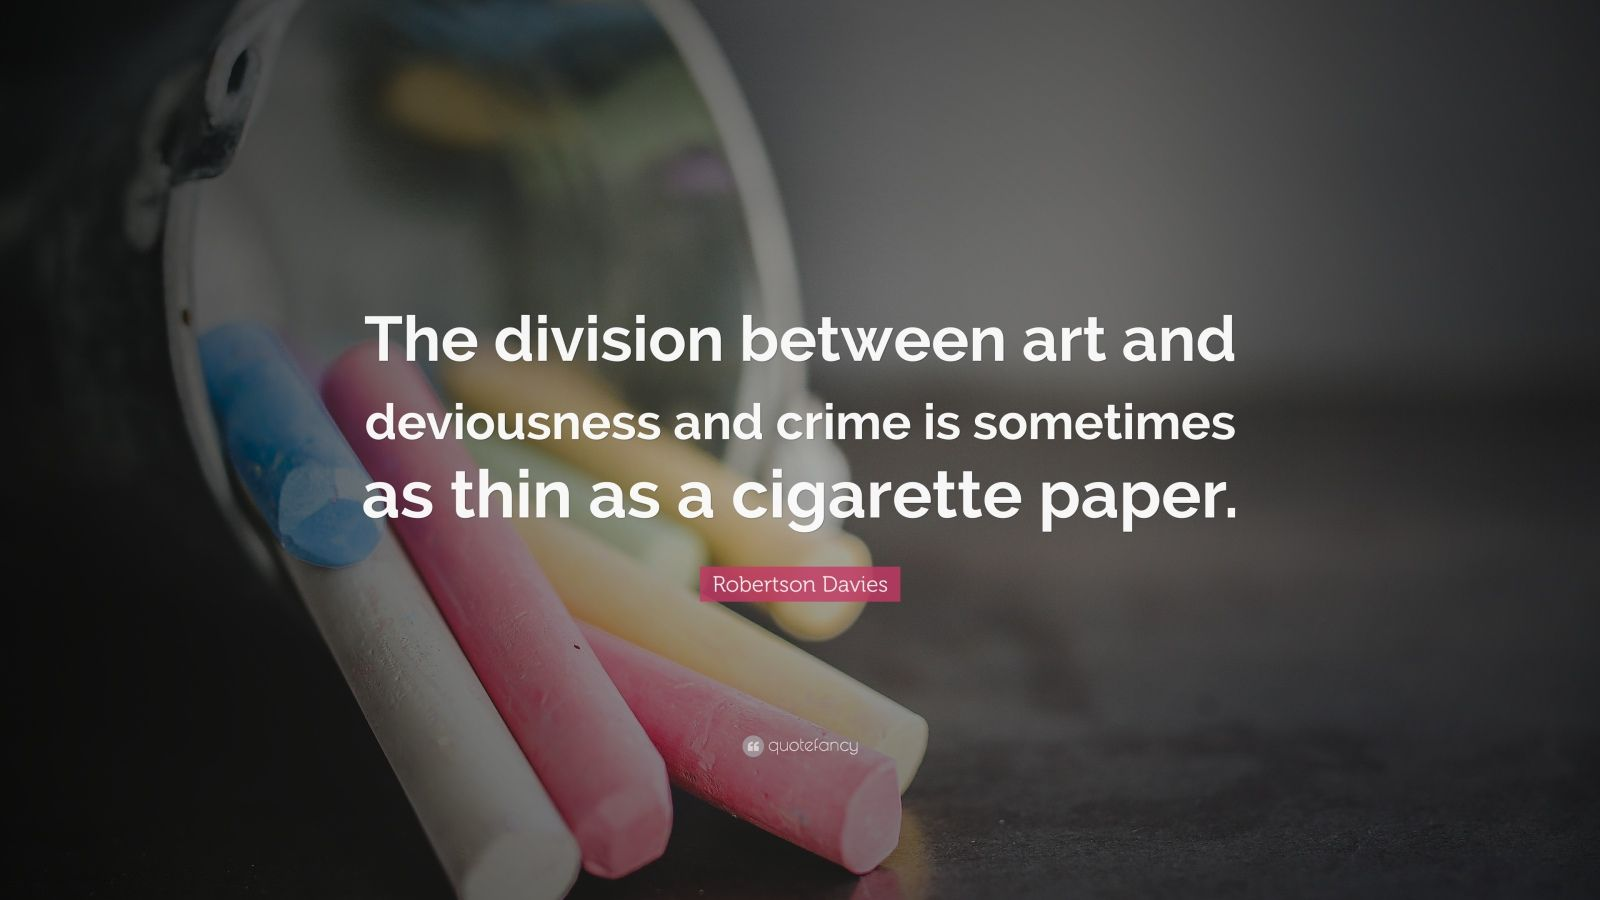 """Robertson Davies Quote: """"The division between art and deviousness and crime is sometimes as thin as a cigarette paper."""""""